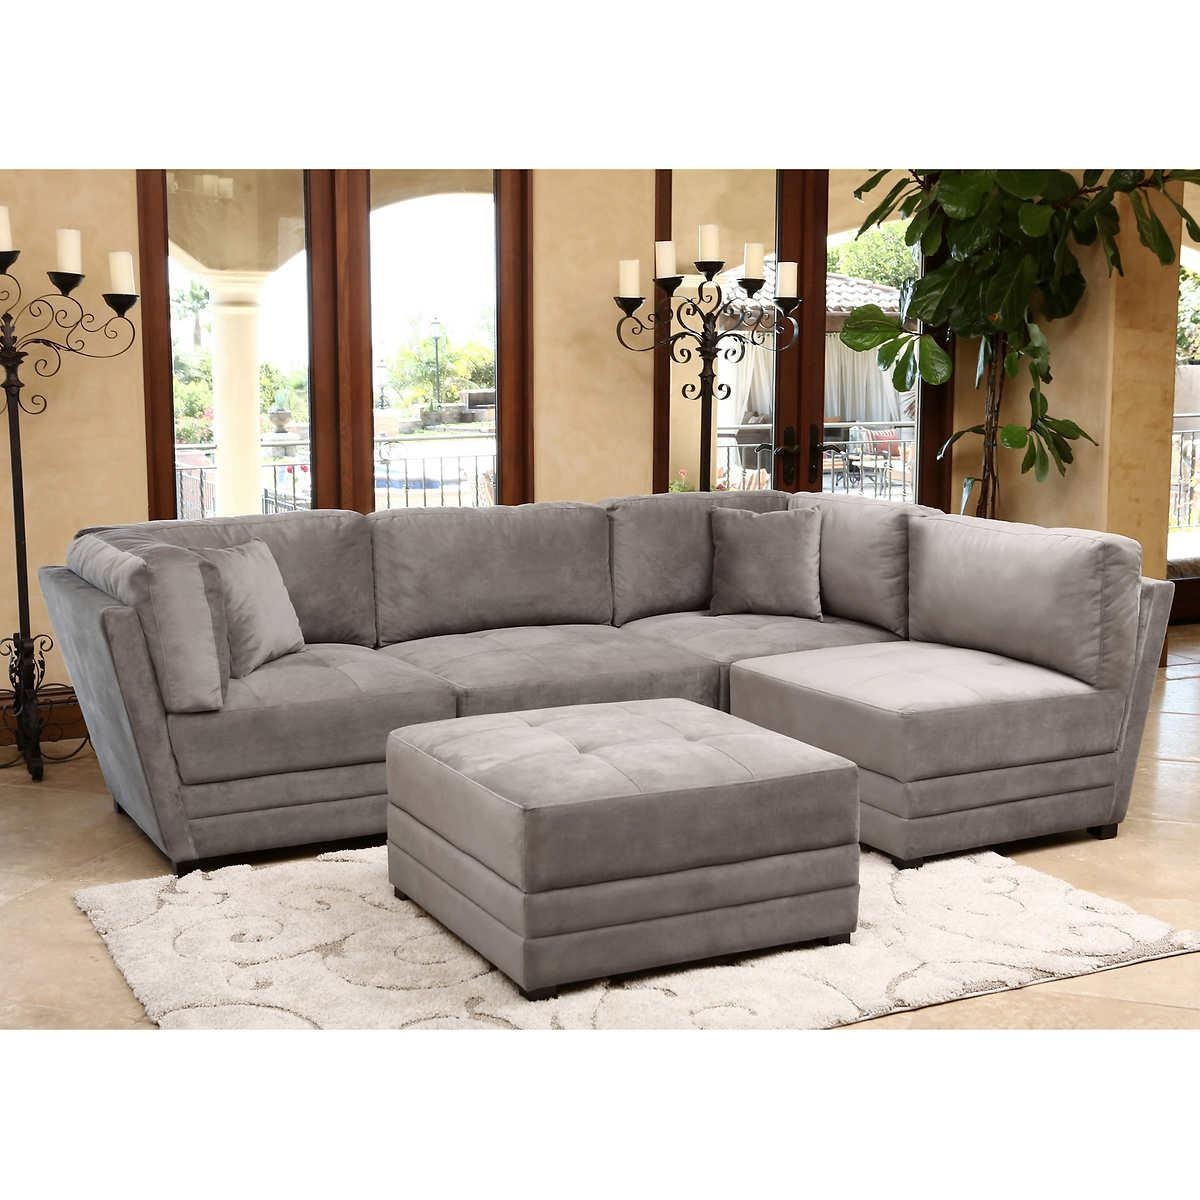 Furniture: Exciting Sectional Sofas Costco For Your Family Room Intended For Deep Sectionals (View 7 of 15)